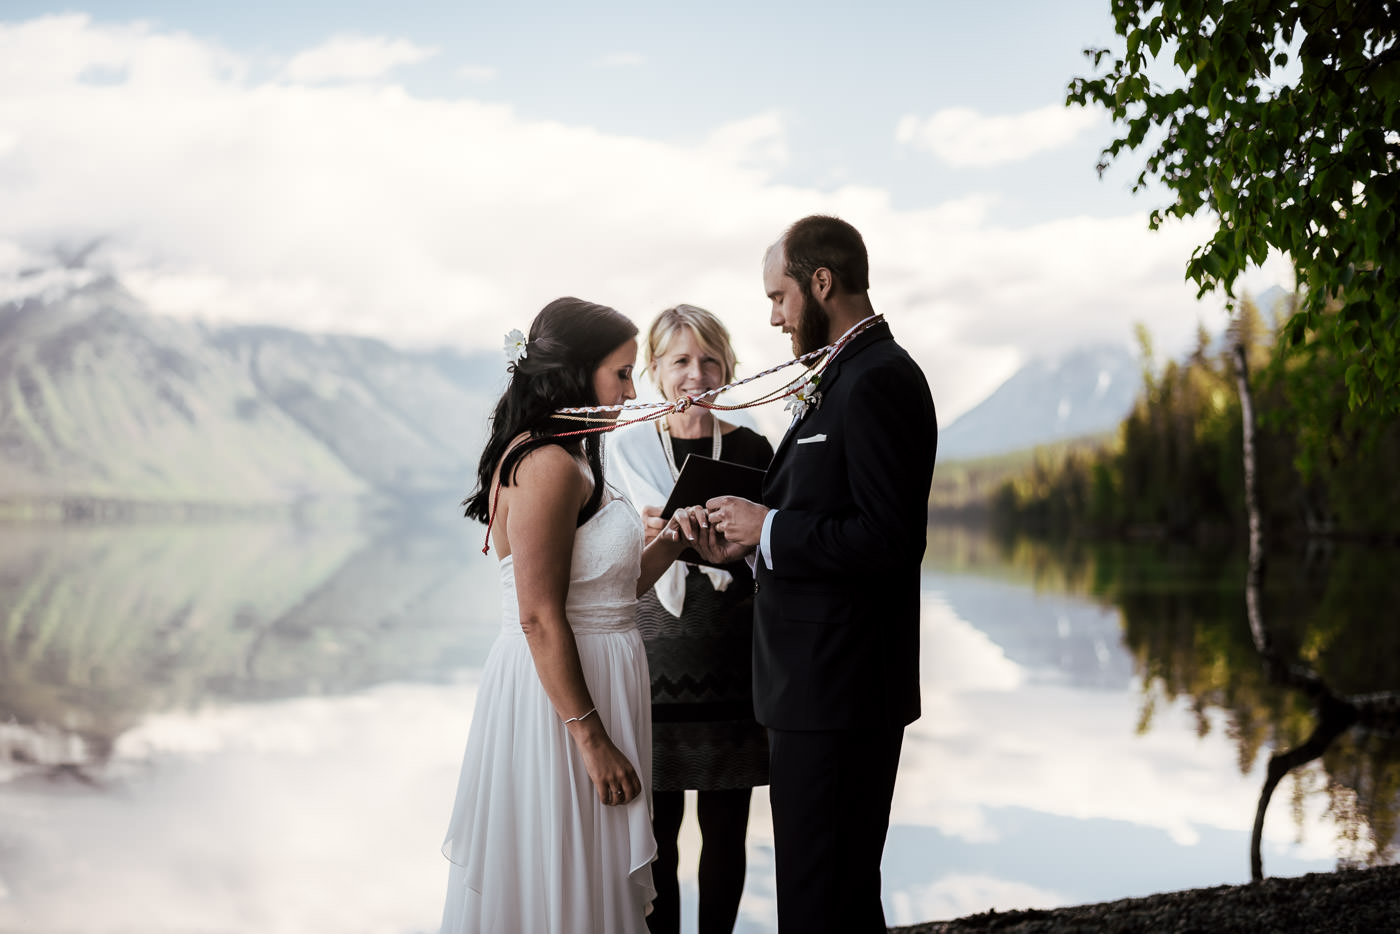 Groom places wedding ring on his new wife's finger at their Montana elopement.